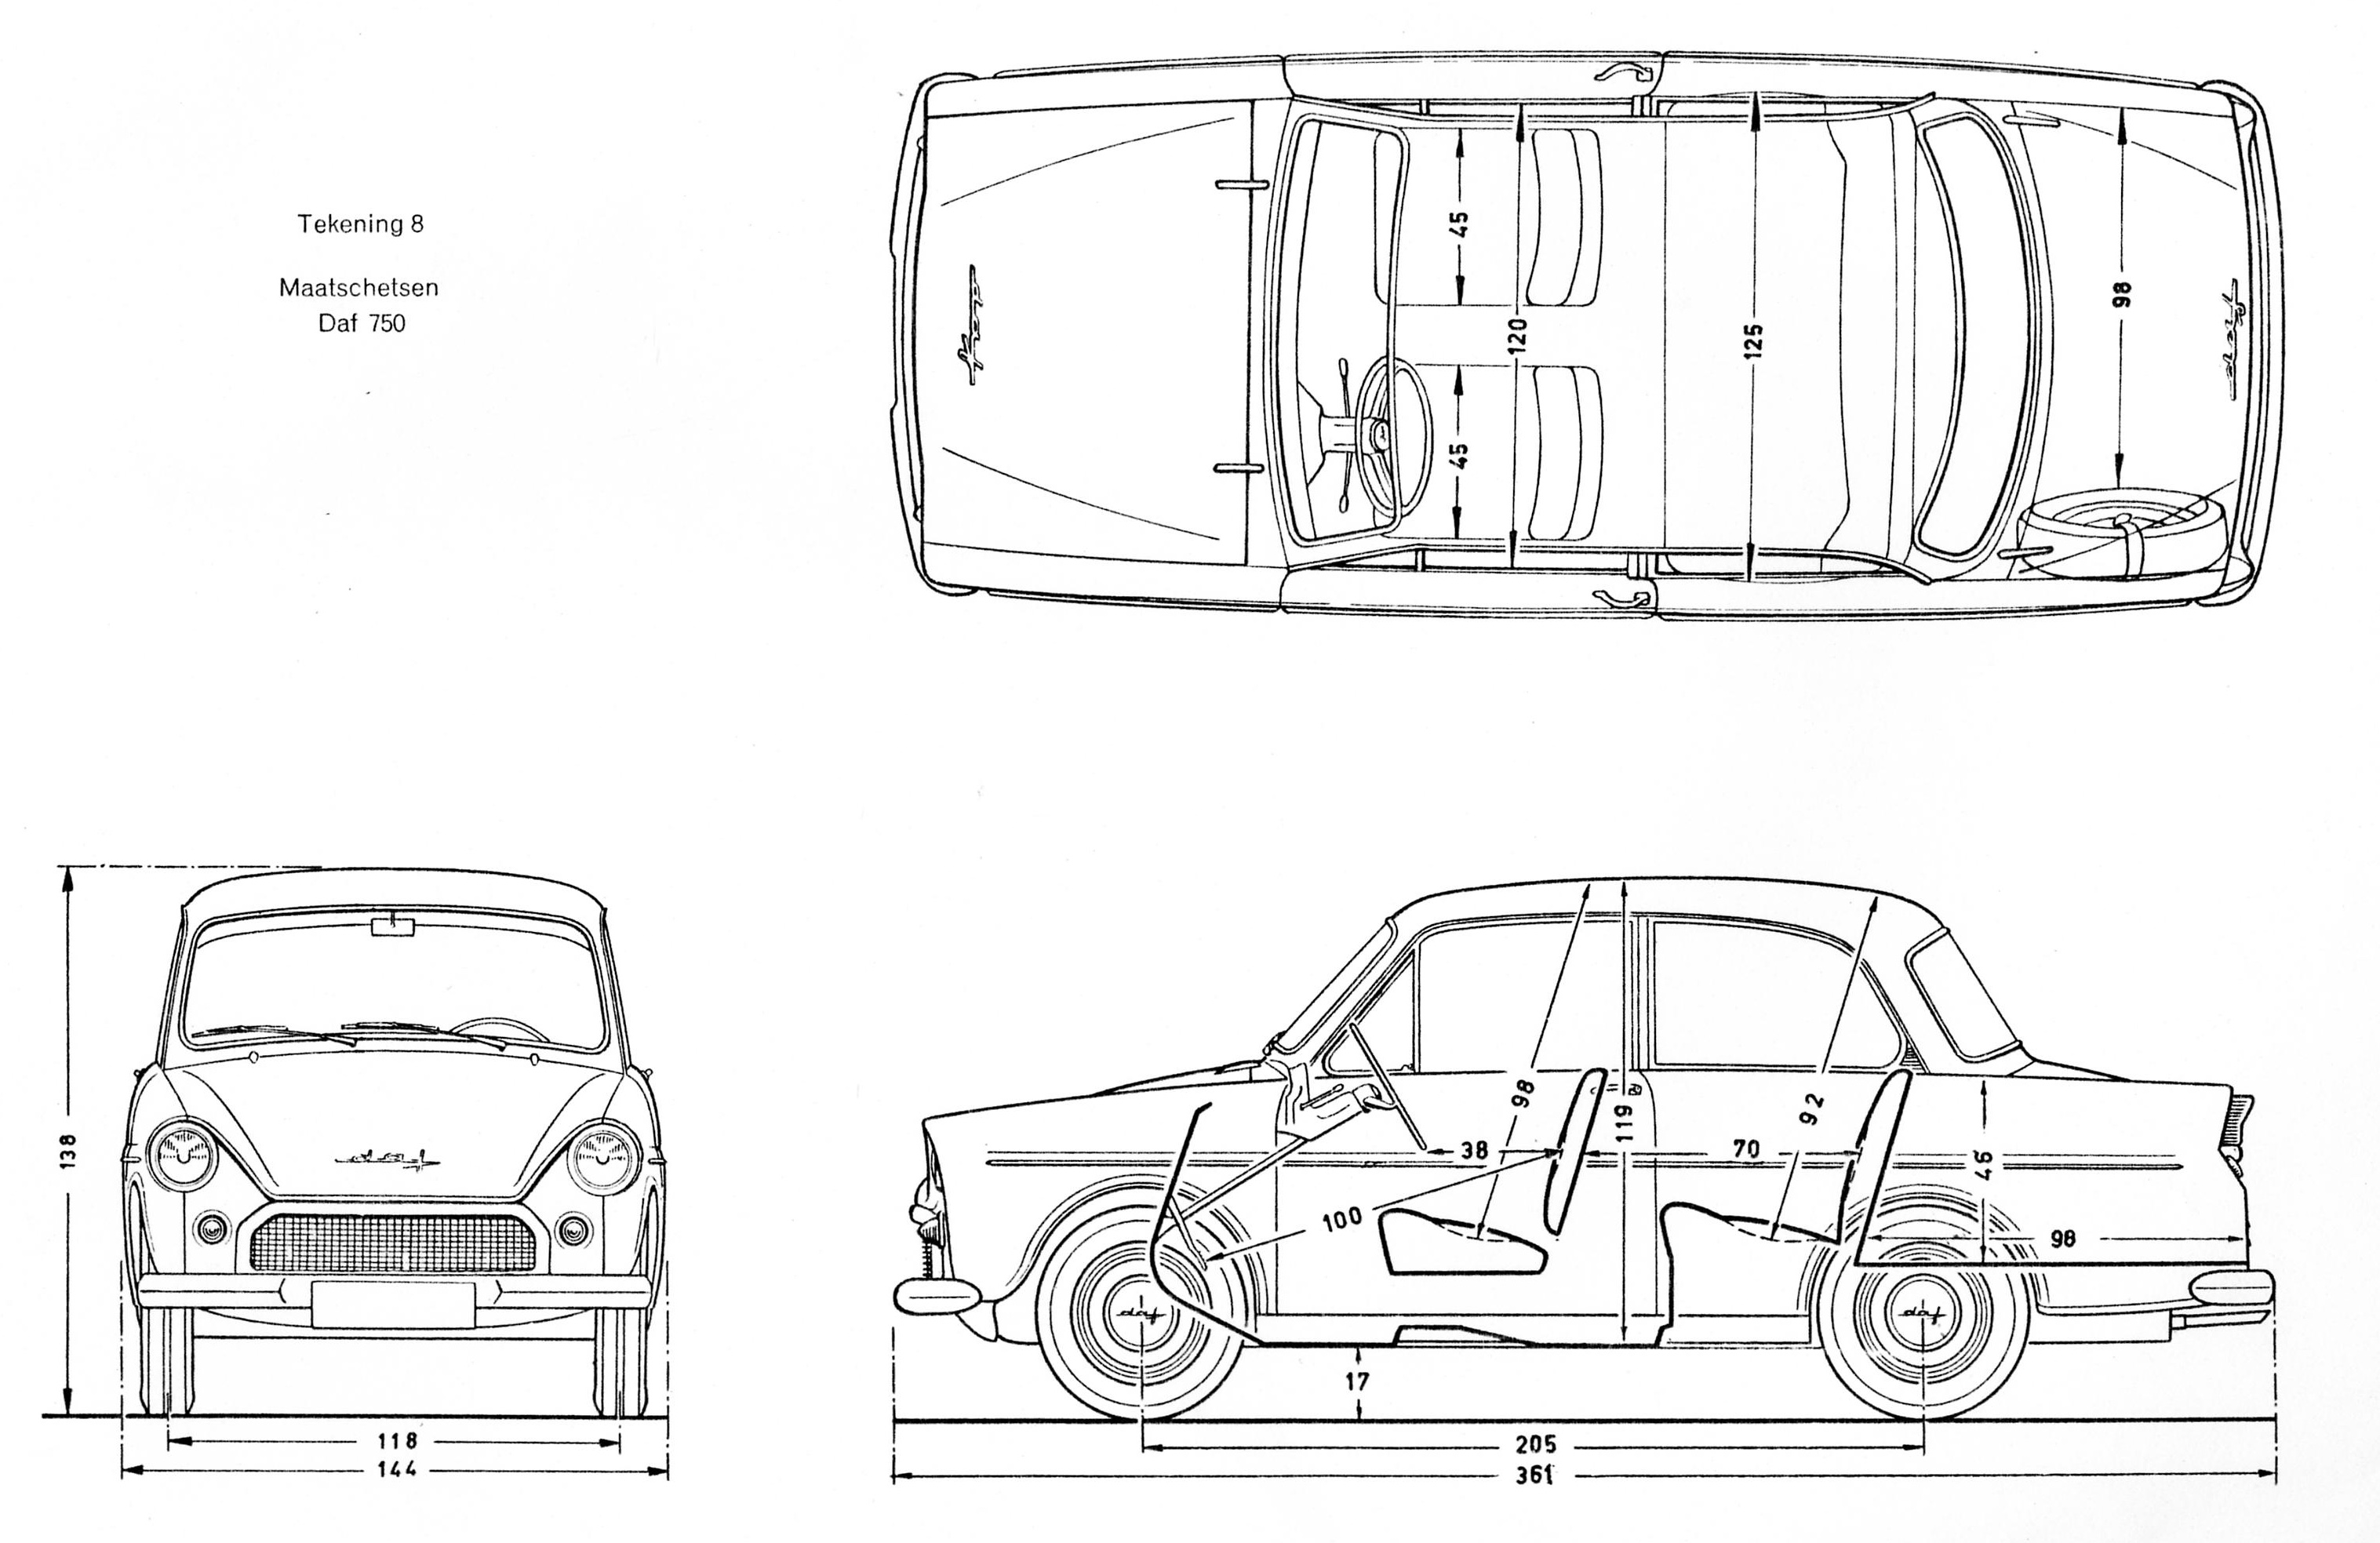 DAF 750 blueprint